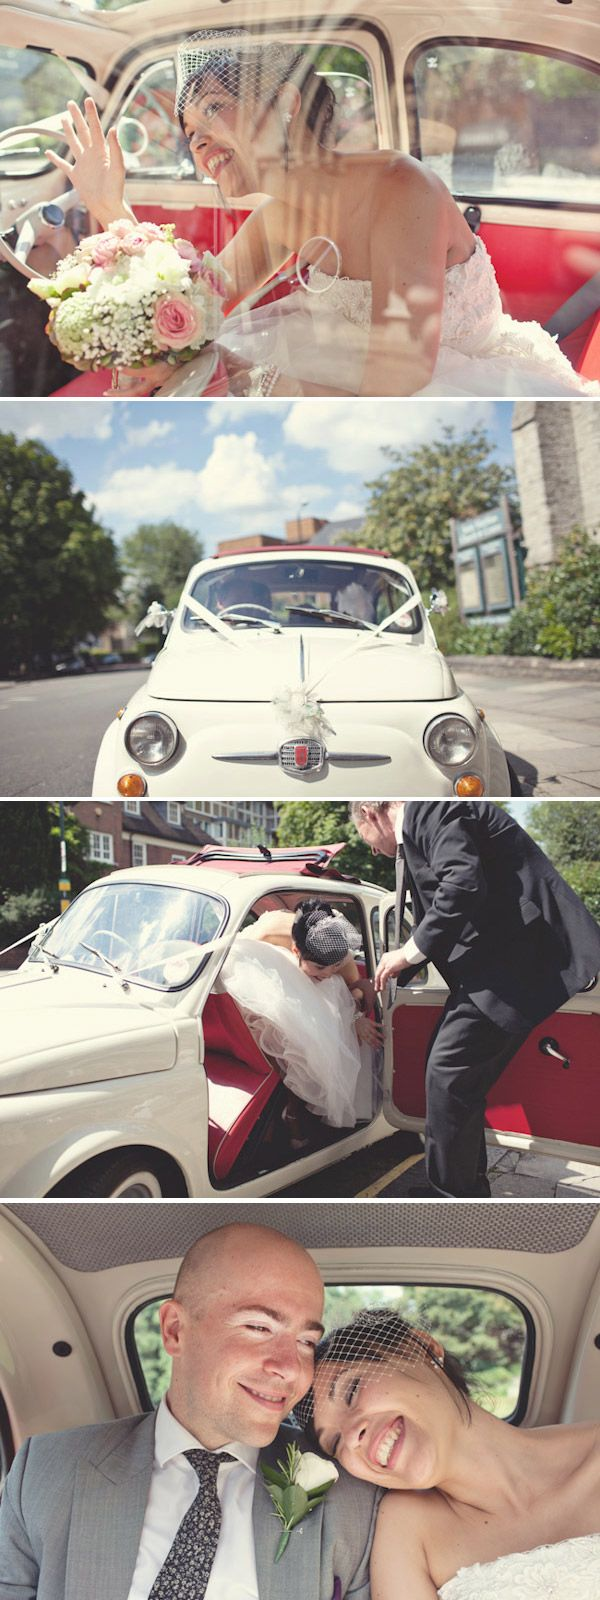 Who doesn't love a diddy fiat 500, such a cute wedding car